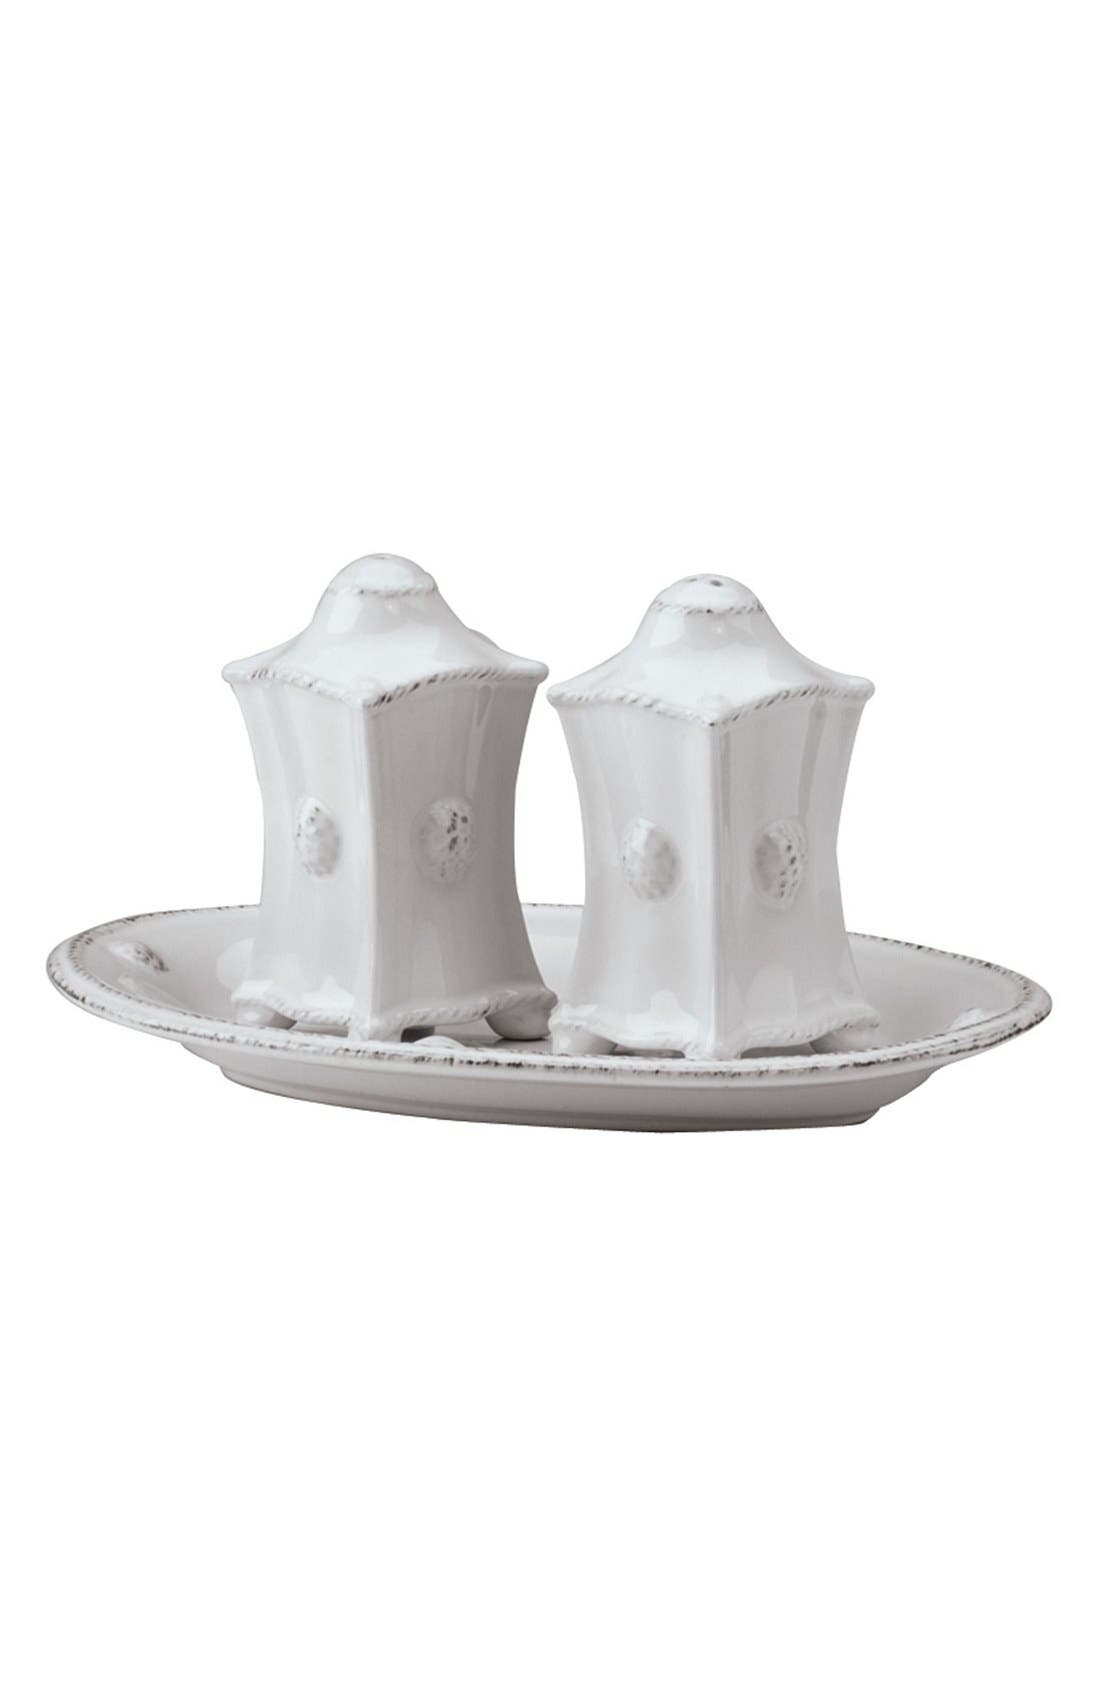 'Berry and Thread' Ceramic Salt & Pepper Shakers,                             Main thumbnail 1, color,